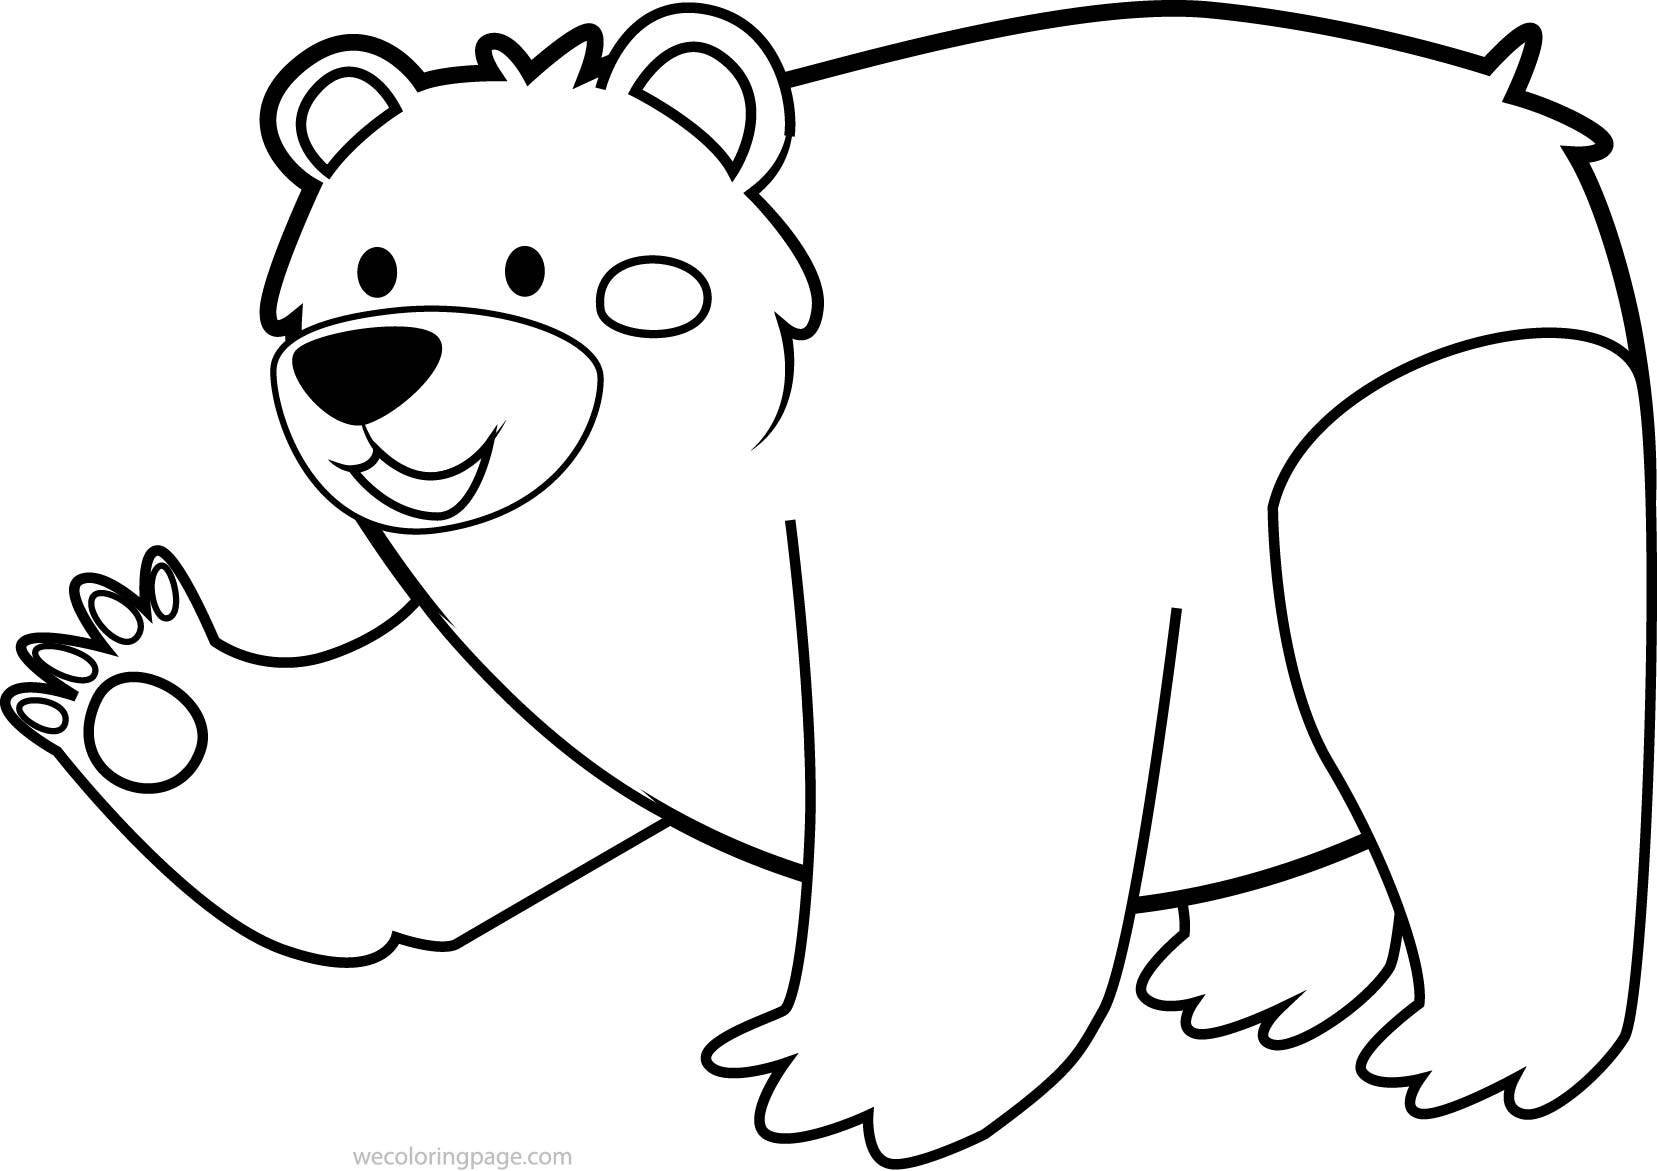 1657x1171 Bear Coloring Page Grizzly Bear Family Coloring Page